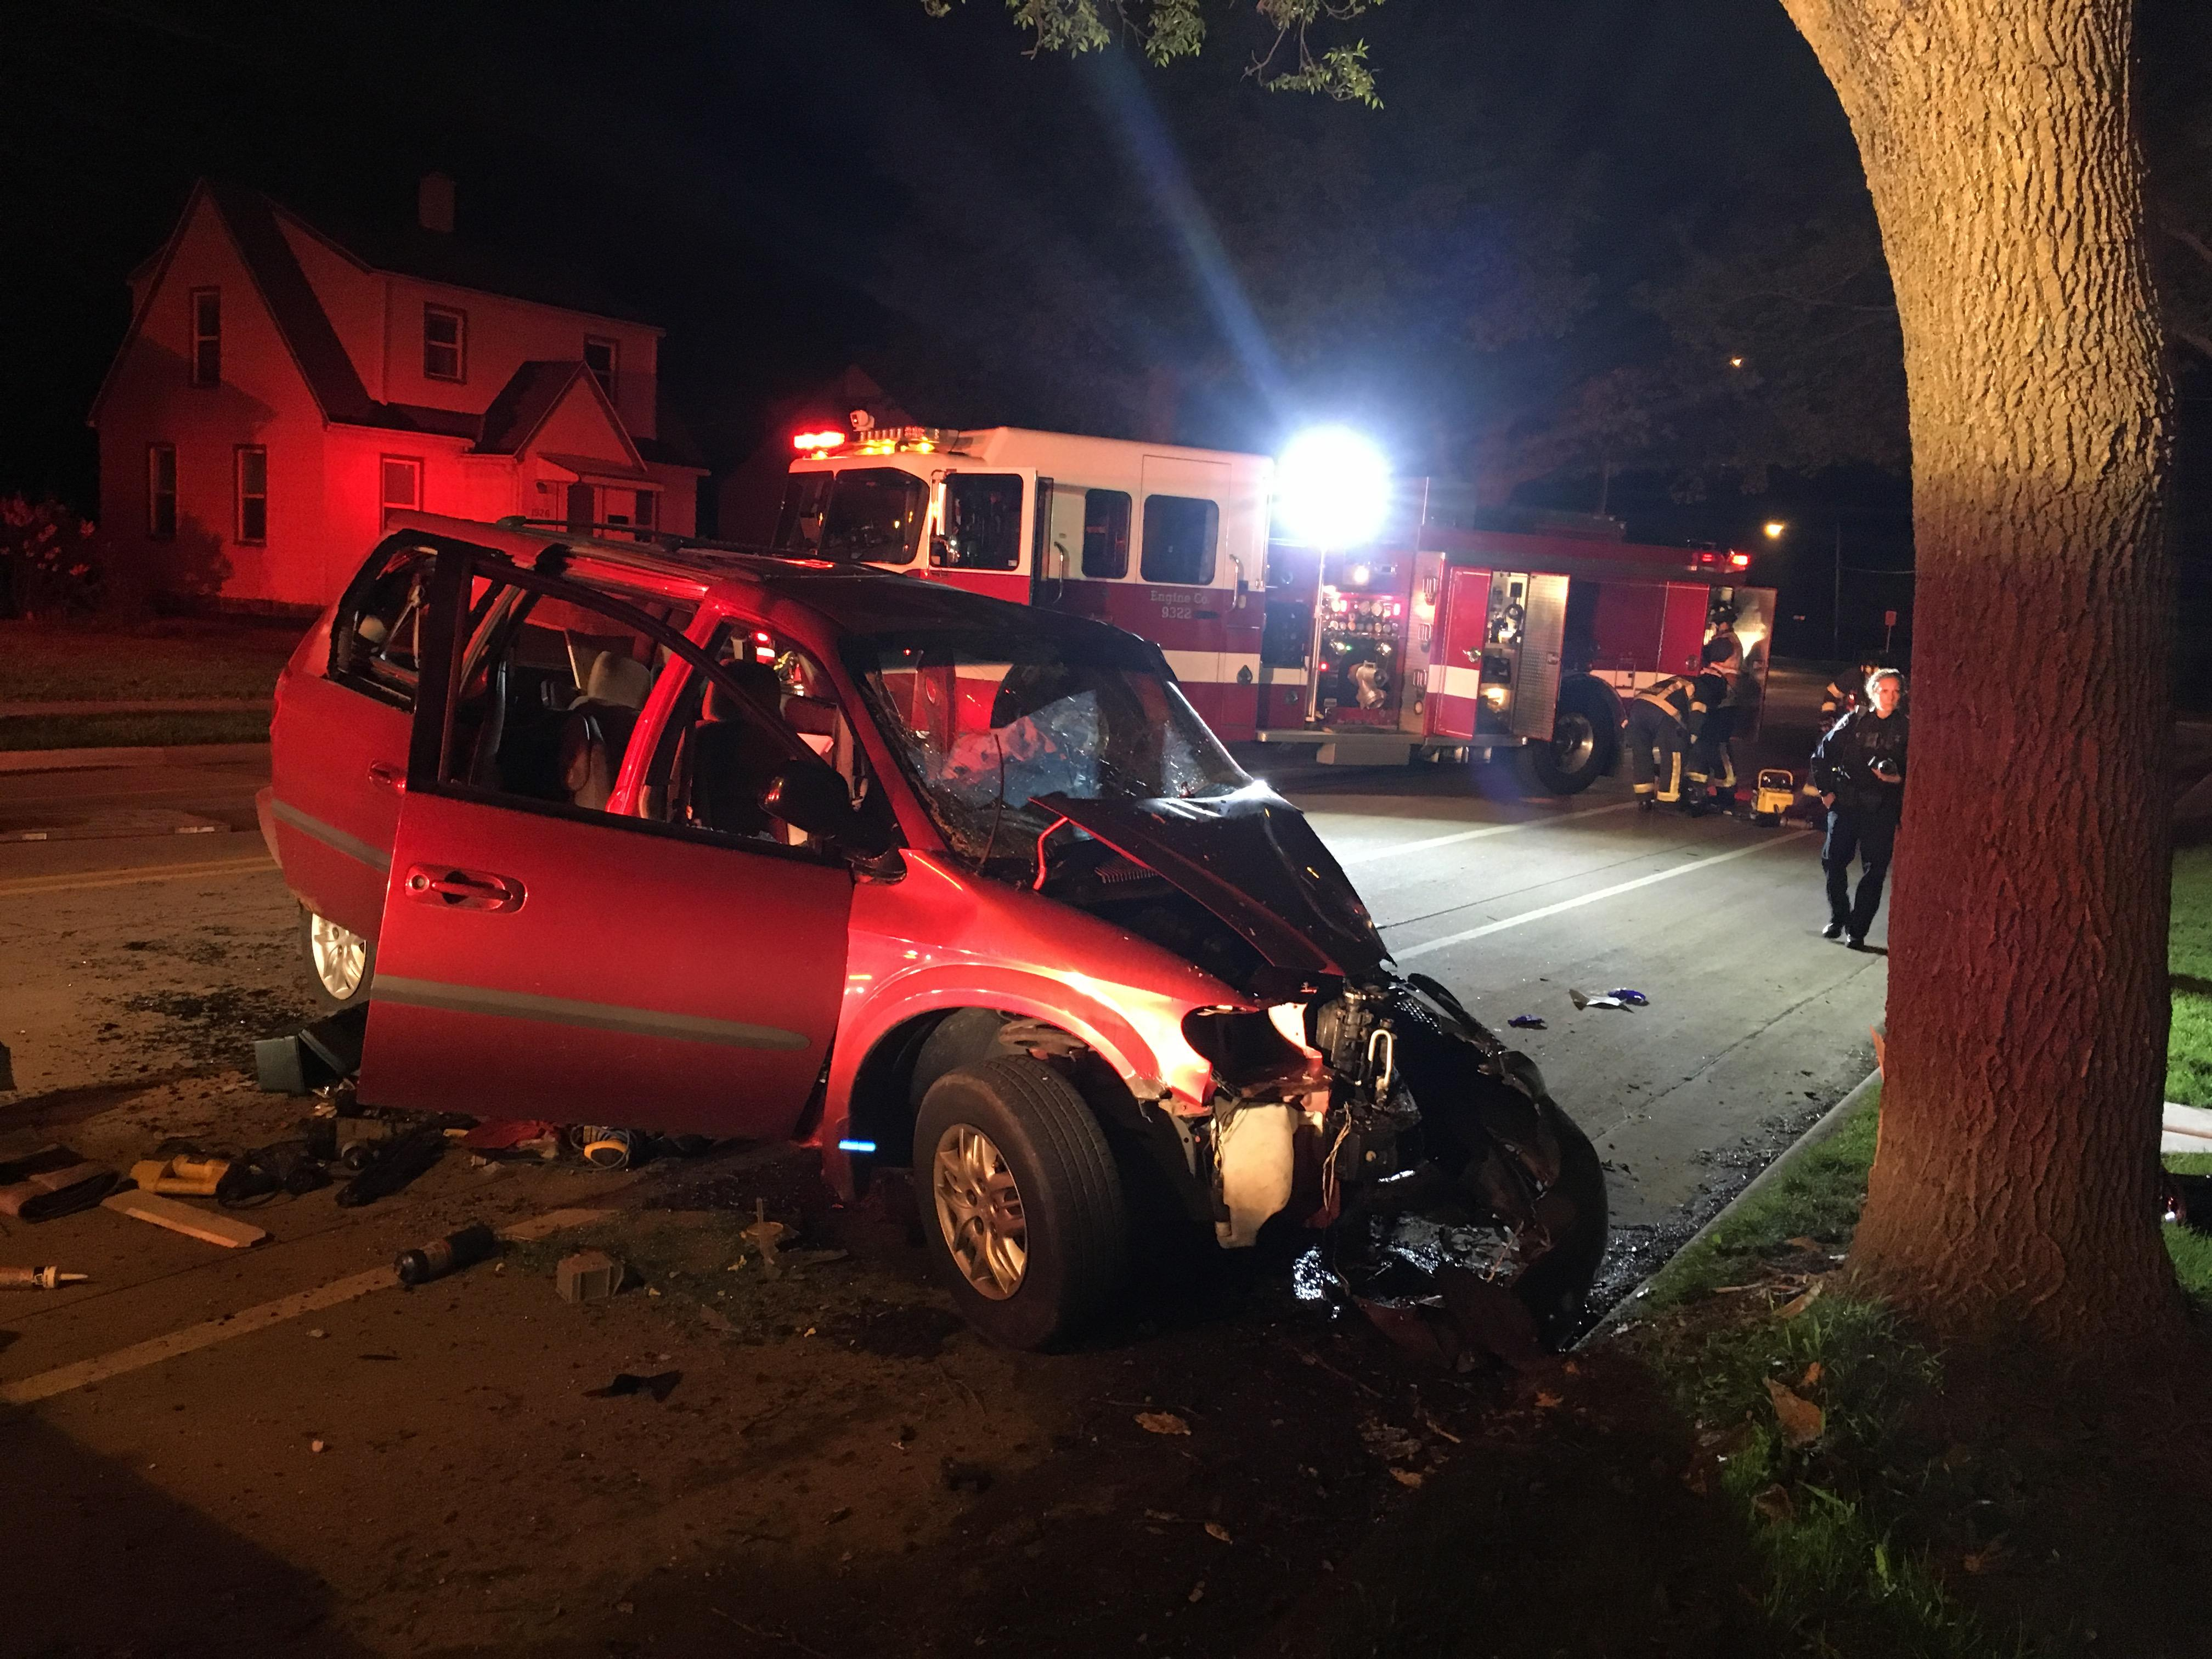 Emergency crews respond to a crash involving a suspected drunken driver on E. Newberry Street in Appleton May 21, 2018. (Photo courtesy Appleton Police Dept.)